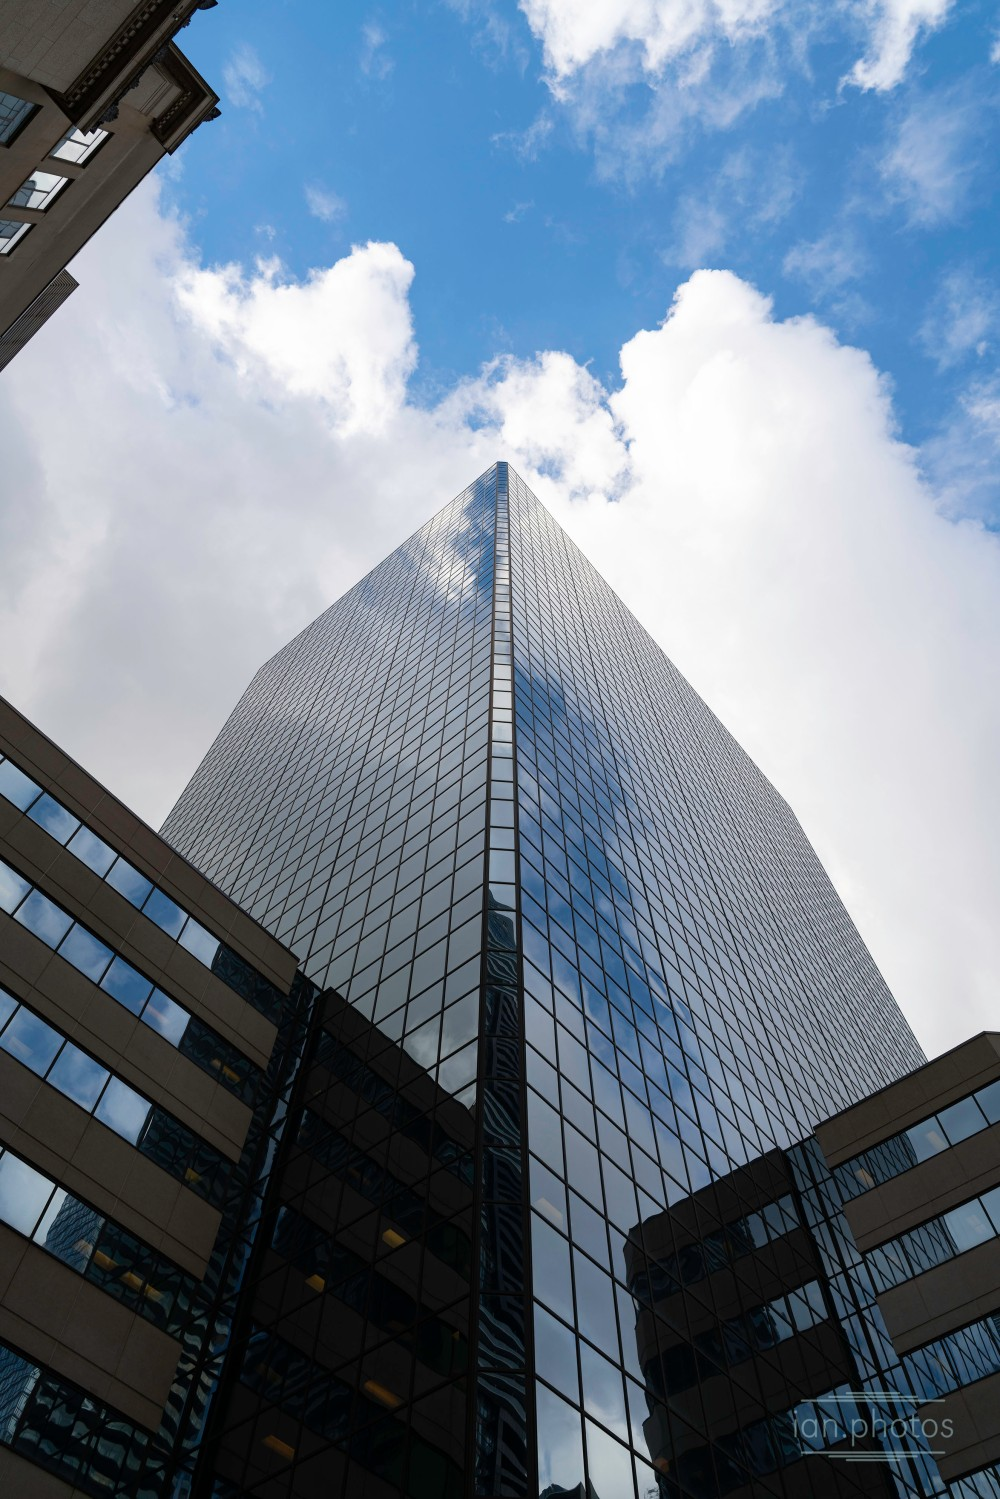 Towering Skyscrapper on a cloudy day. | ian.photos